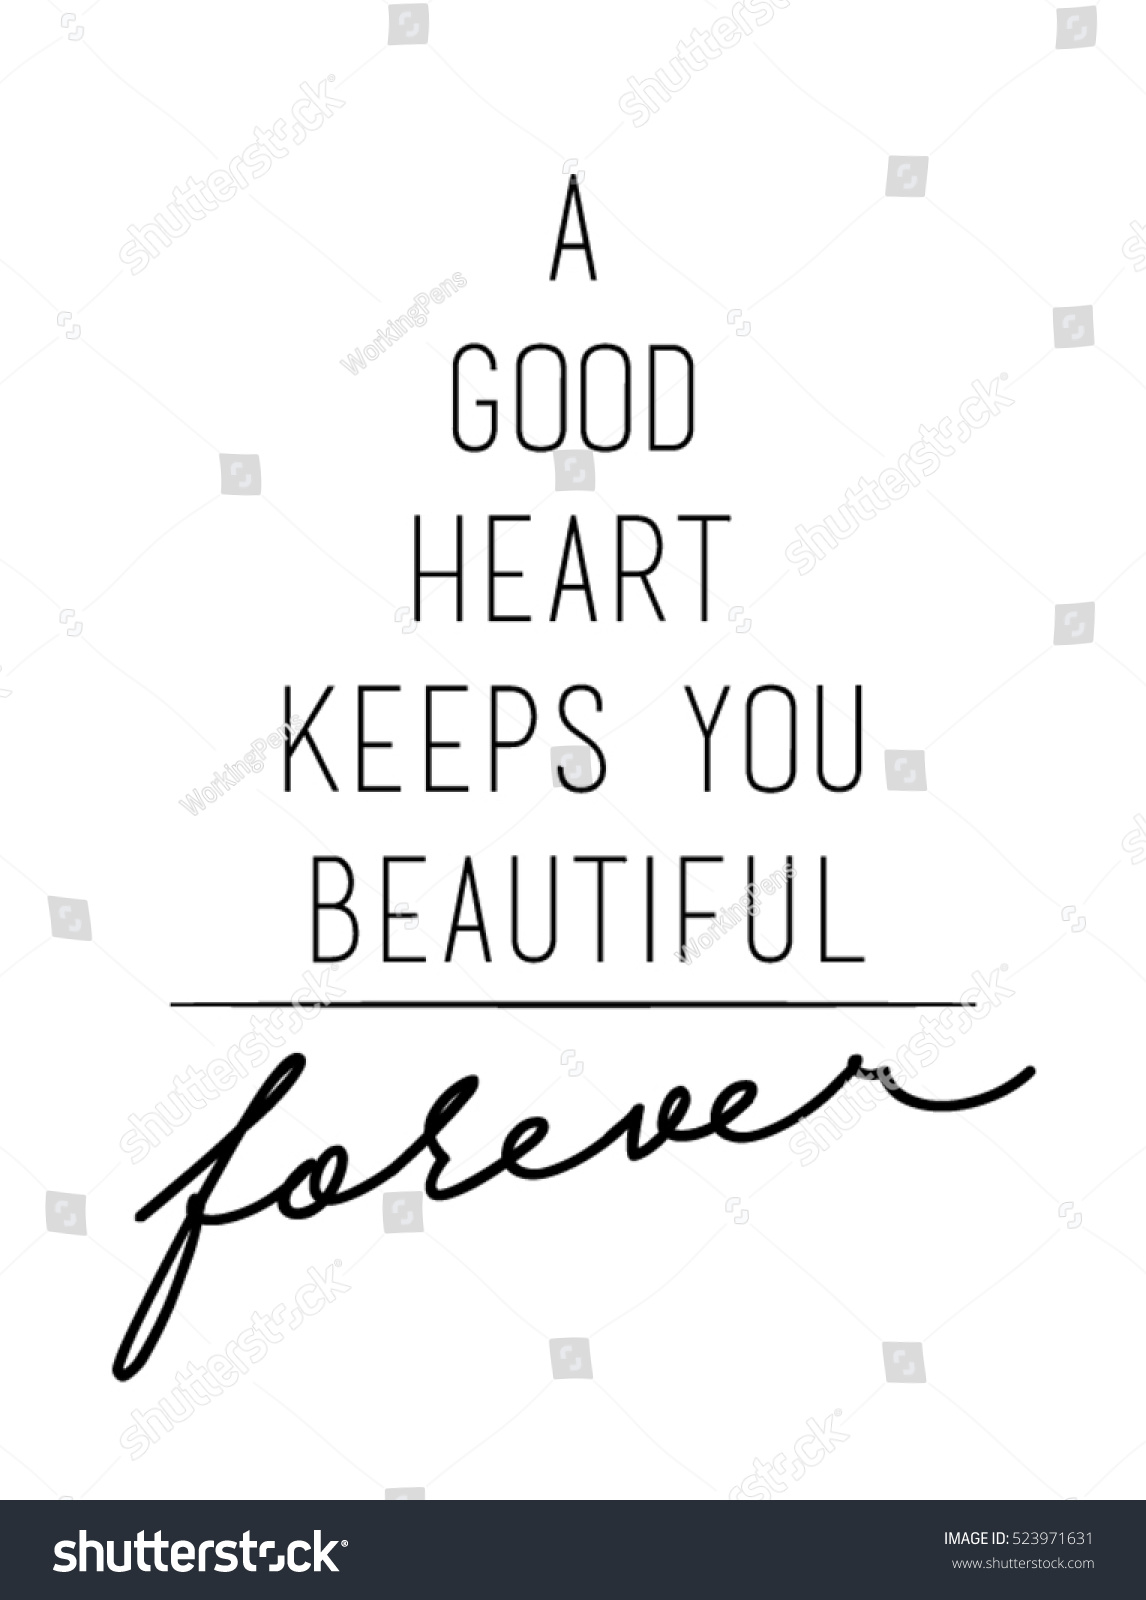 Image of: Sayings Good Heart Keeps You Beautiful Quote Print In Vectorlettering Quotes Motivation For Life Skiptomylouorg Good Heart Keeps You Beautiful Quote Stock Vector royalty Free